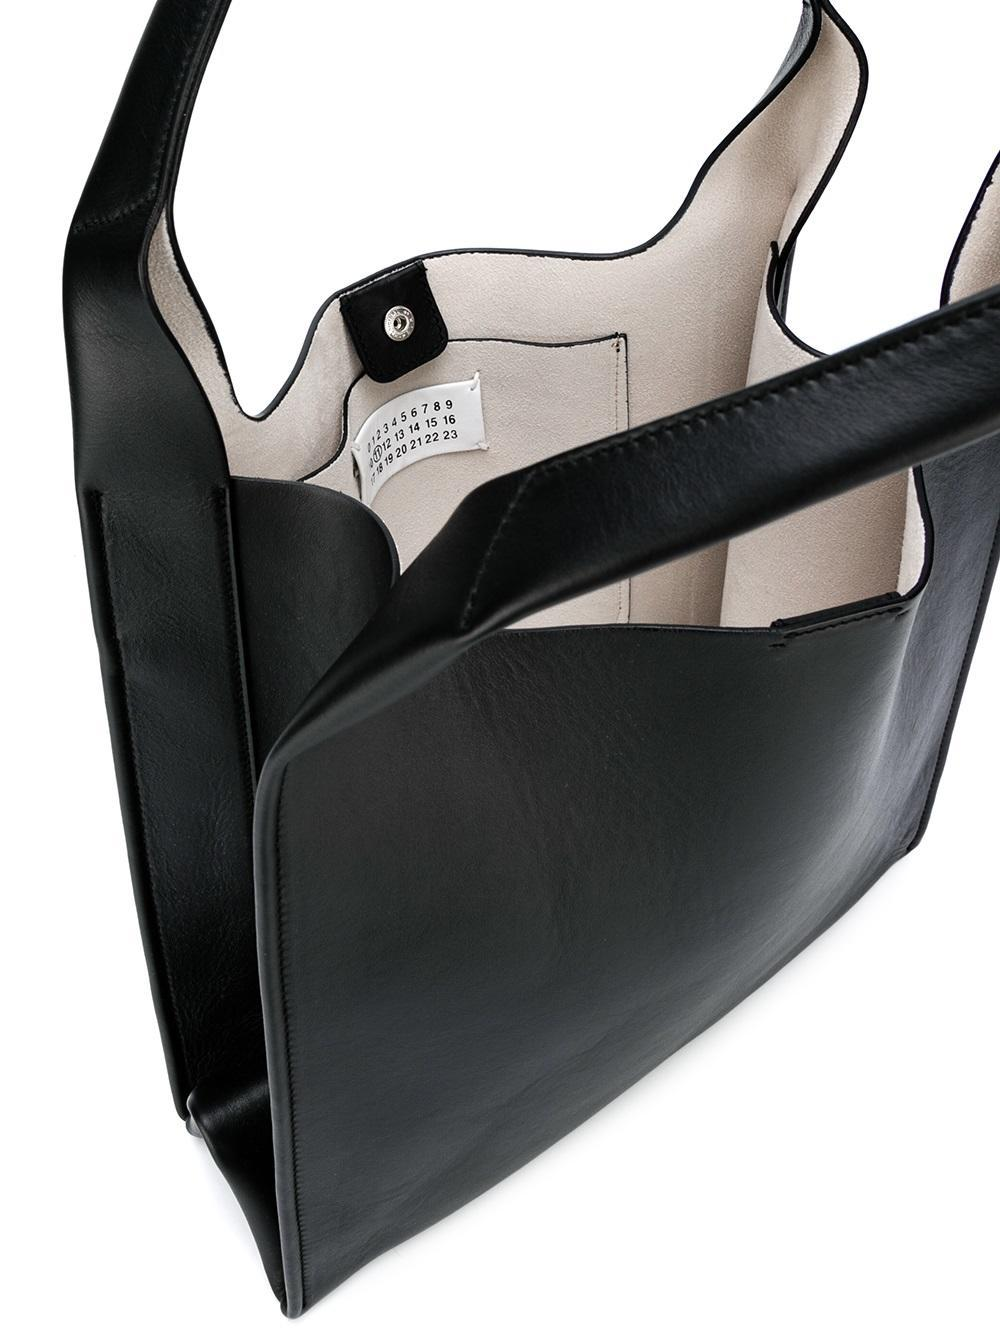 Maison Margiela Leather Structured Tote Bag in Black